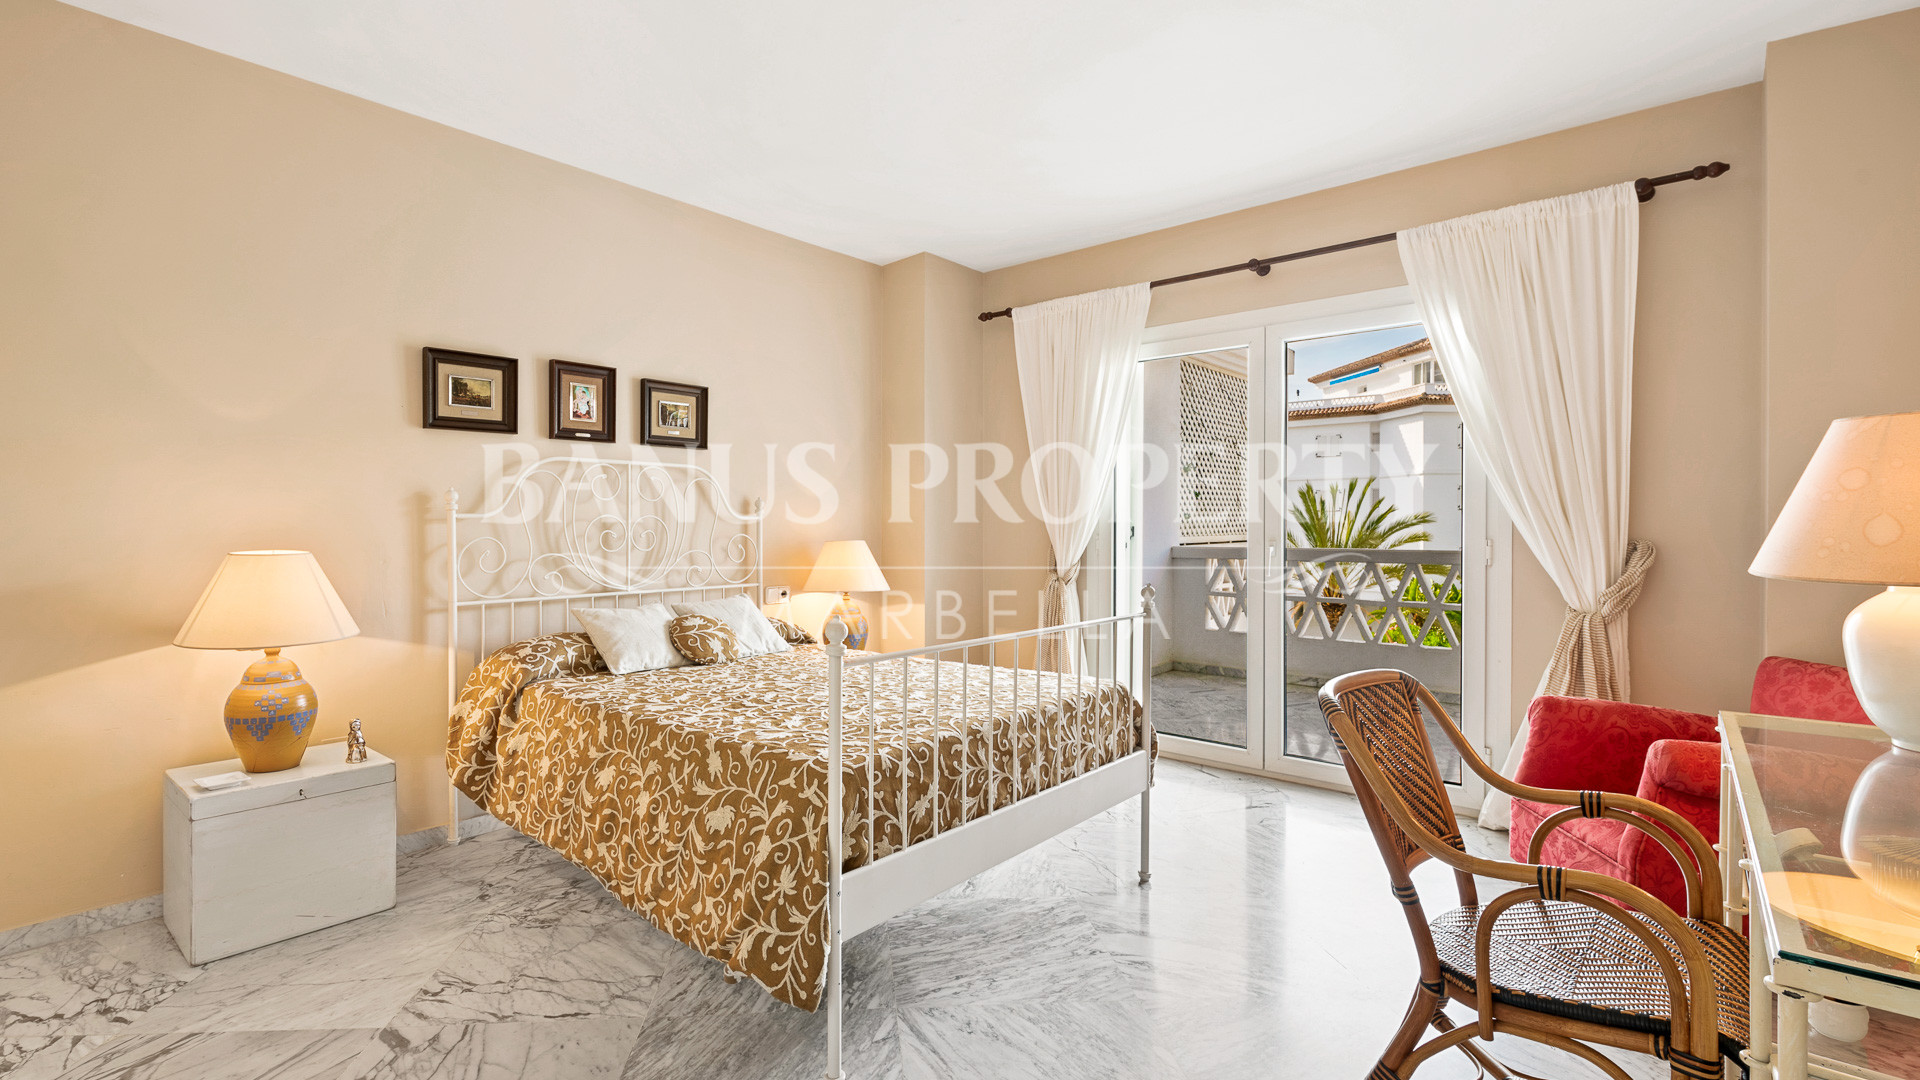 2 Bed Apartment in the ultra-luxurious Beach front Residential Playas del Duque- Puerto Banus